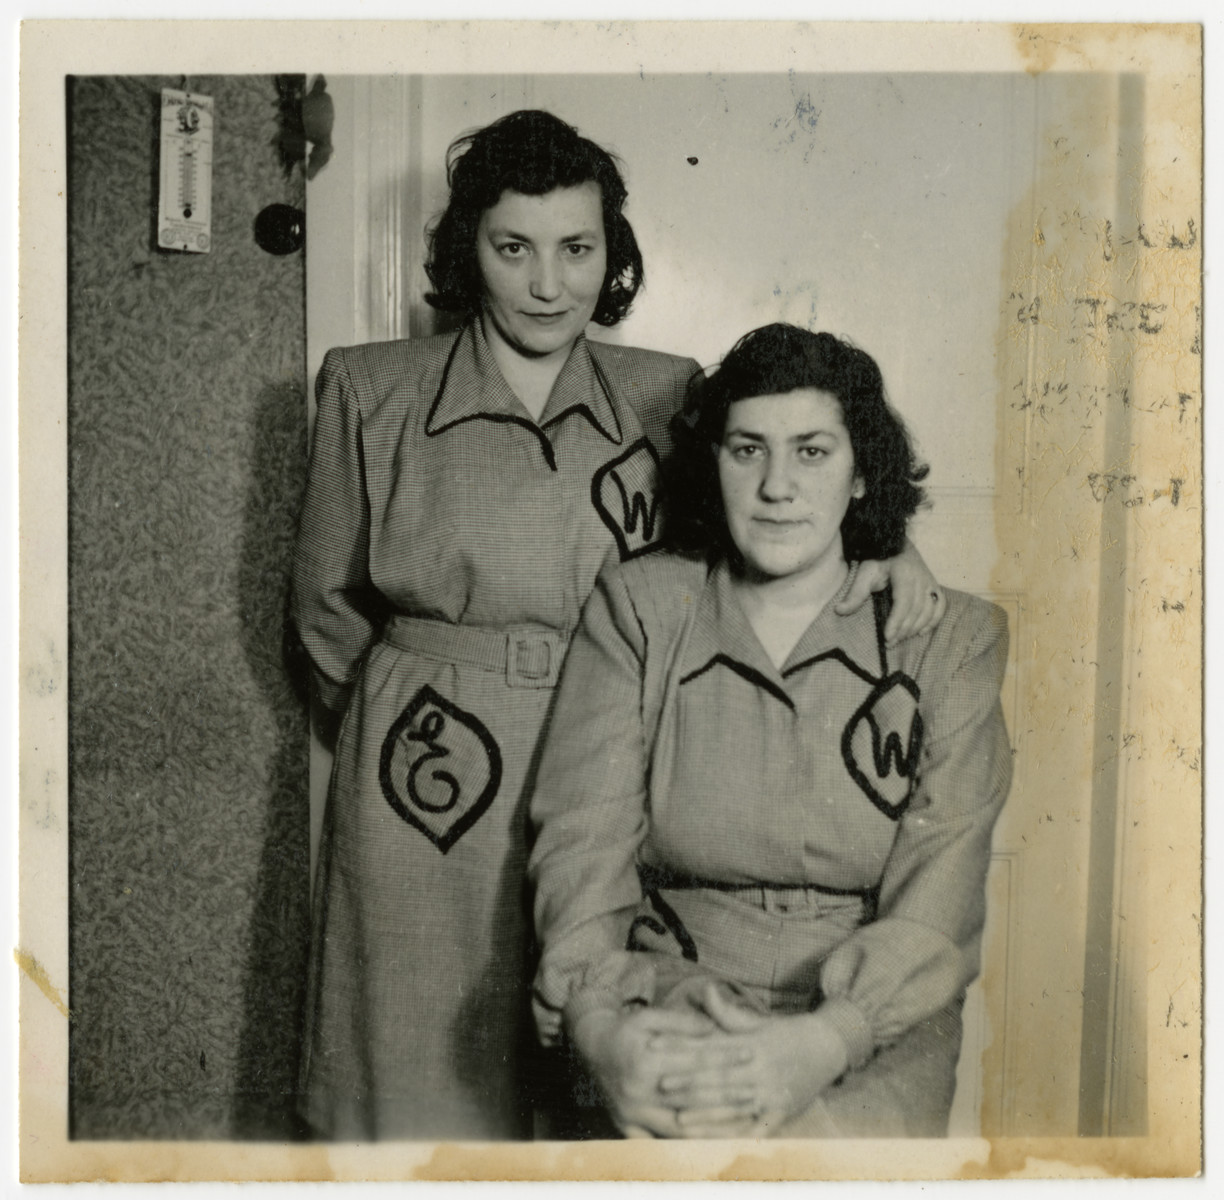 Czech-Jewish sisters pose in matching dresses while living as displaced persons in Sweden..    Together, sisters Elizabeth (Winkler) Reiss, left, and Sara (Winkler) Spitz, survived Auschwitz and Bergen-Belsen following their deportation from Berehovo in 1944.  In 1946 they immigrated to the United States.